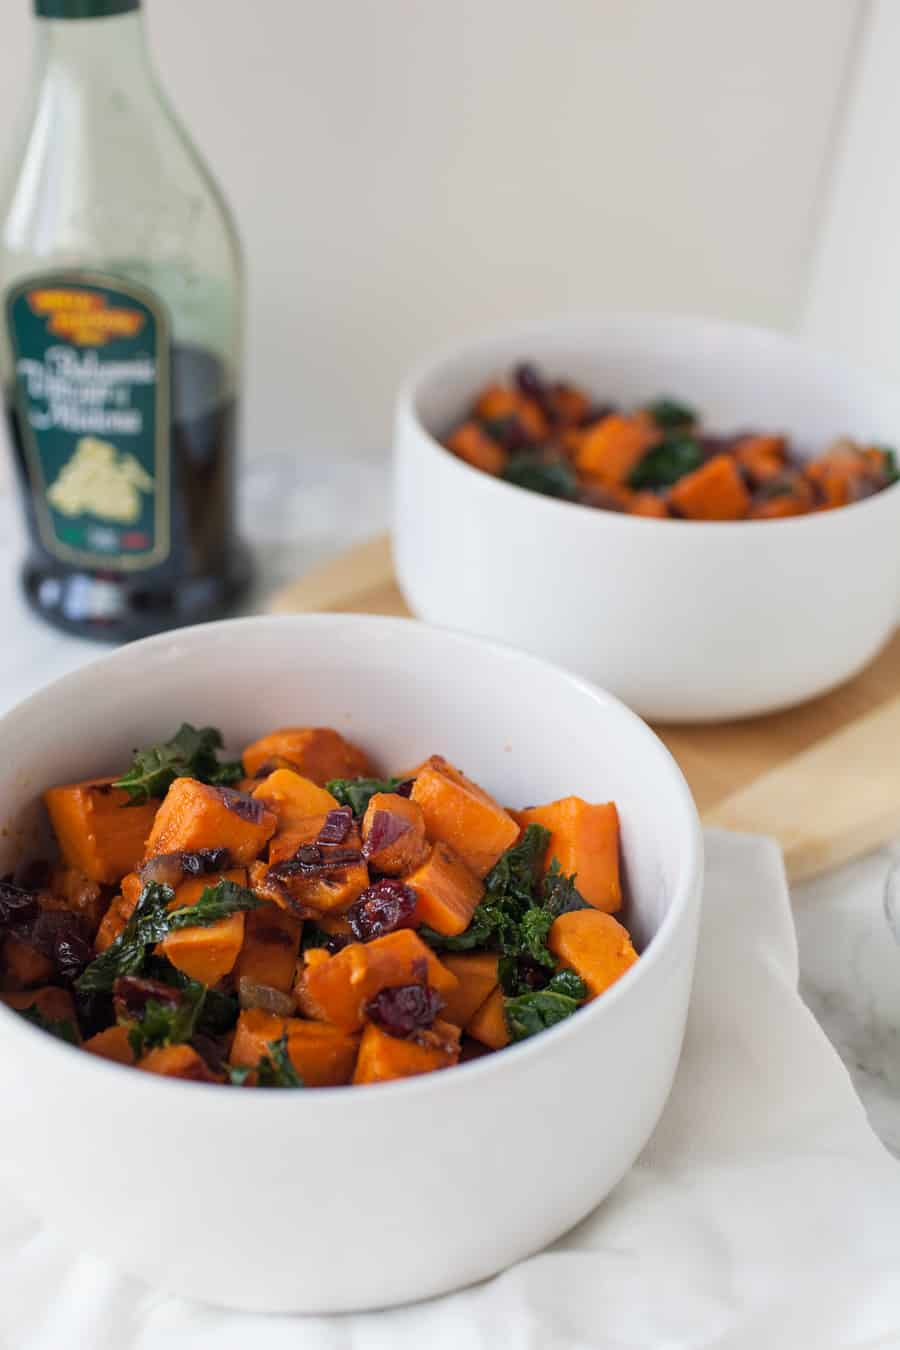 In need of a quick but delicious side dish for dinner? This sweet potato and kale sauté is perfectly delicious and easy to make. The sweet potatoes are the star of this show, but the red onions, cranberries, kale and a splash of balsamic vinegar make this dish robust in flavor! easy side dish | side dish ideas | sweet potatoes | kale | red onions | onions | cranberries | balsamic vinegar